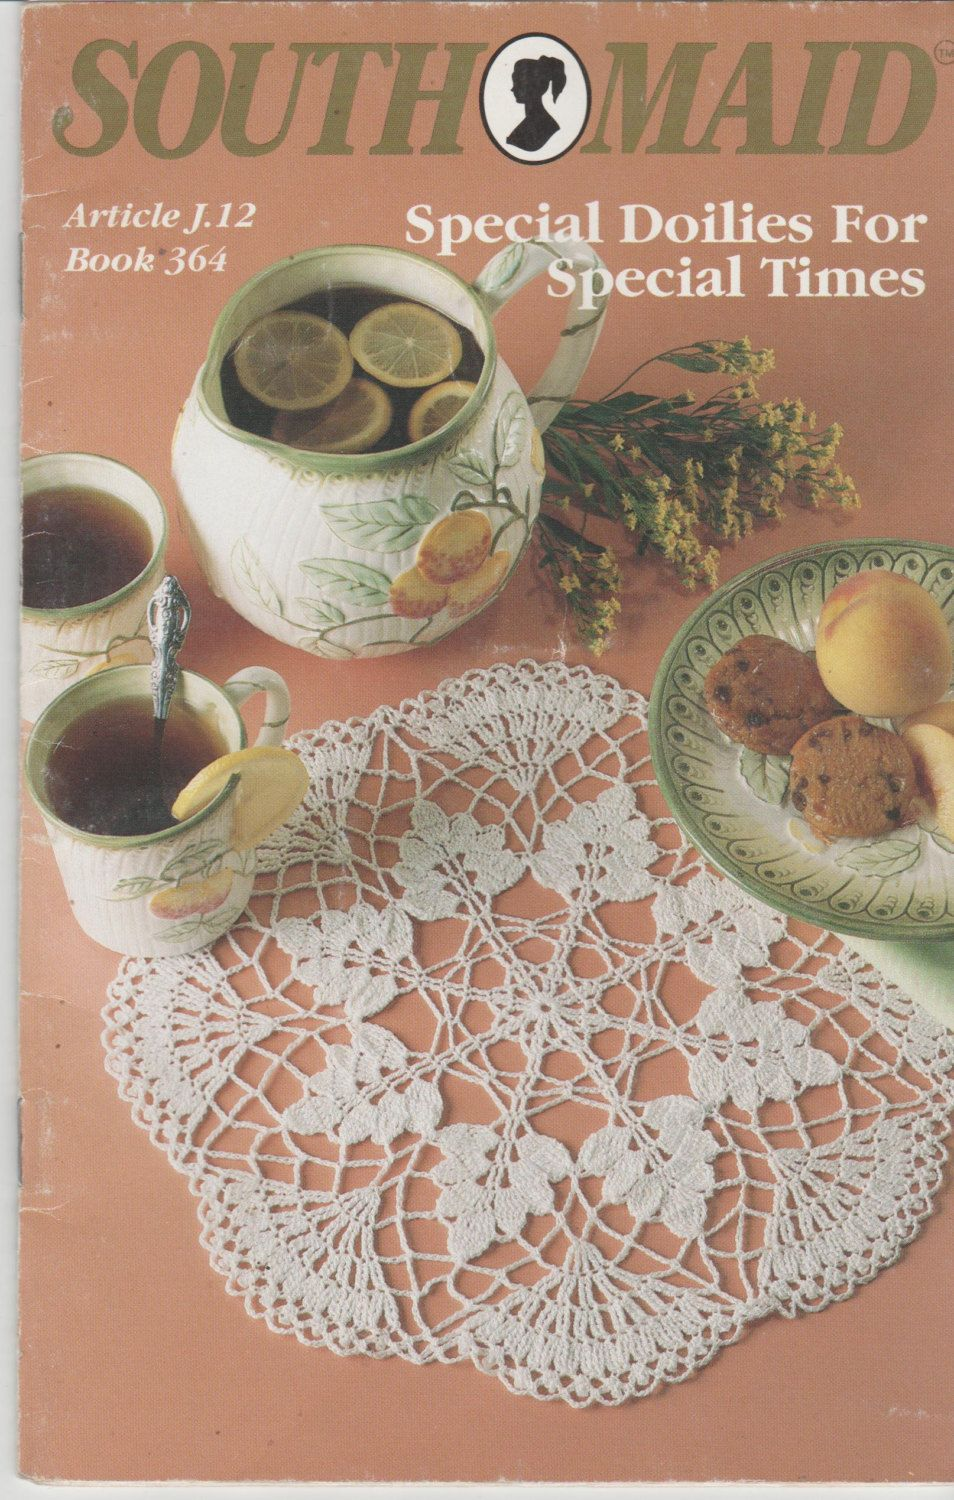 South Maid Special Doilies For Special Times Pattern Book Used